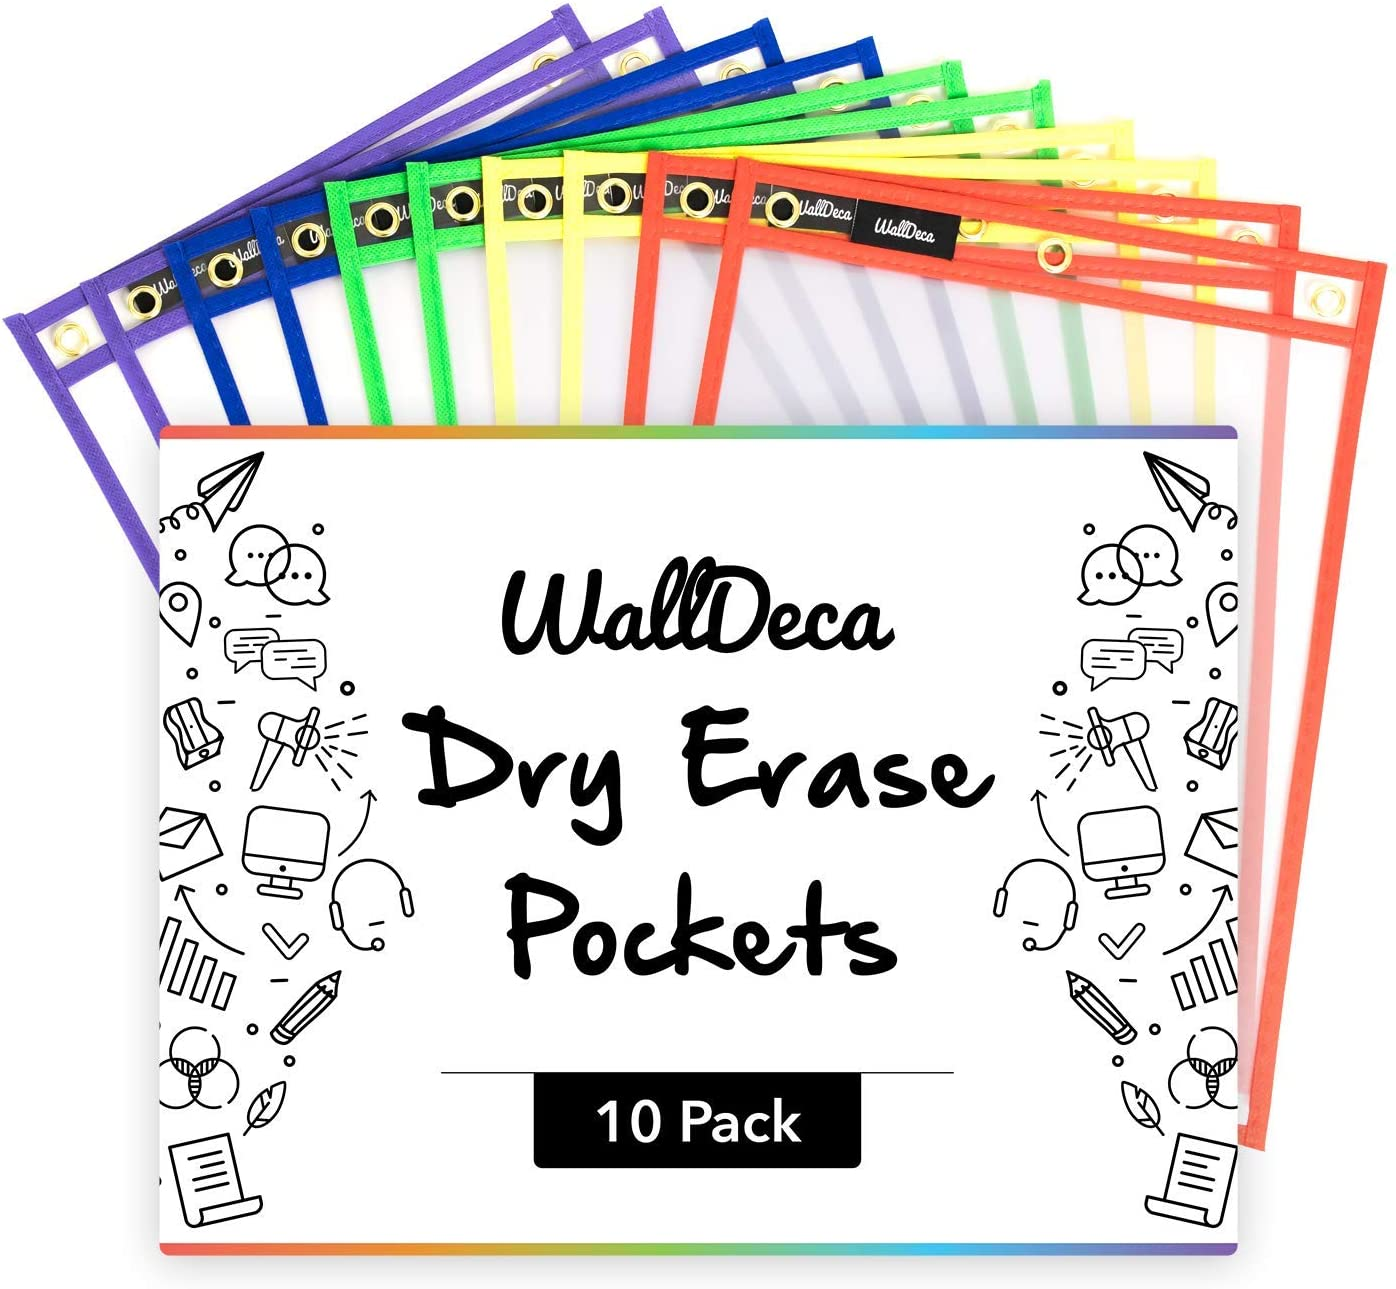 """WallDeca Dry Erase Pocket Sleeves Assorted Colors (10-Pack), 8.5"""" x 11"""" Job Ticket Holders, Reusable Dry Erase Sleeves"""